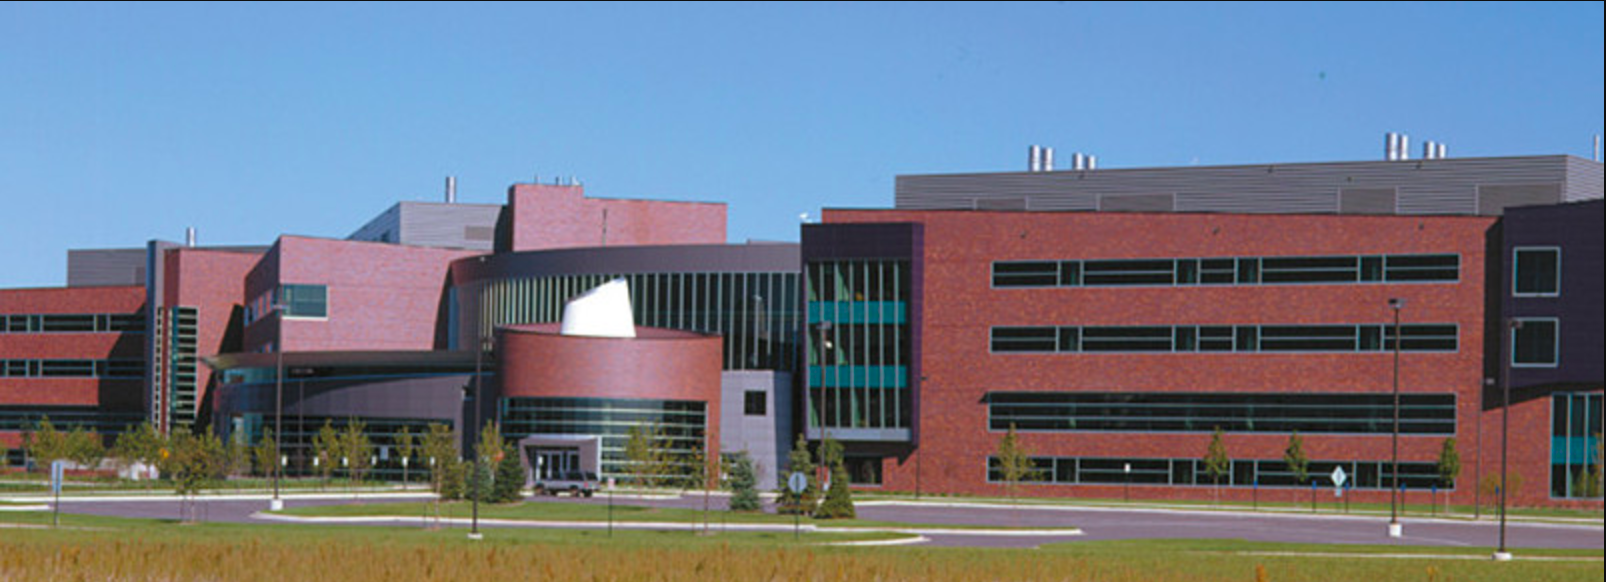 MD Biosciences US Facilities